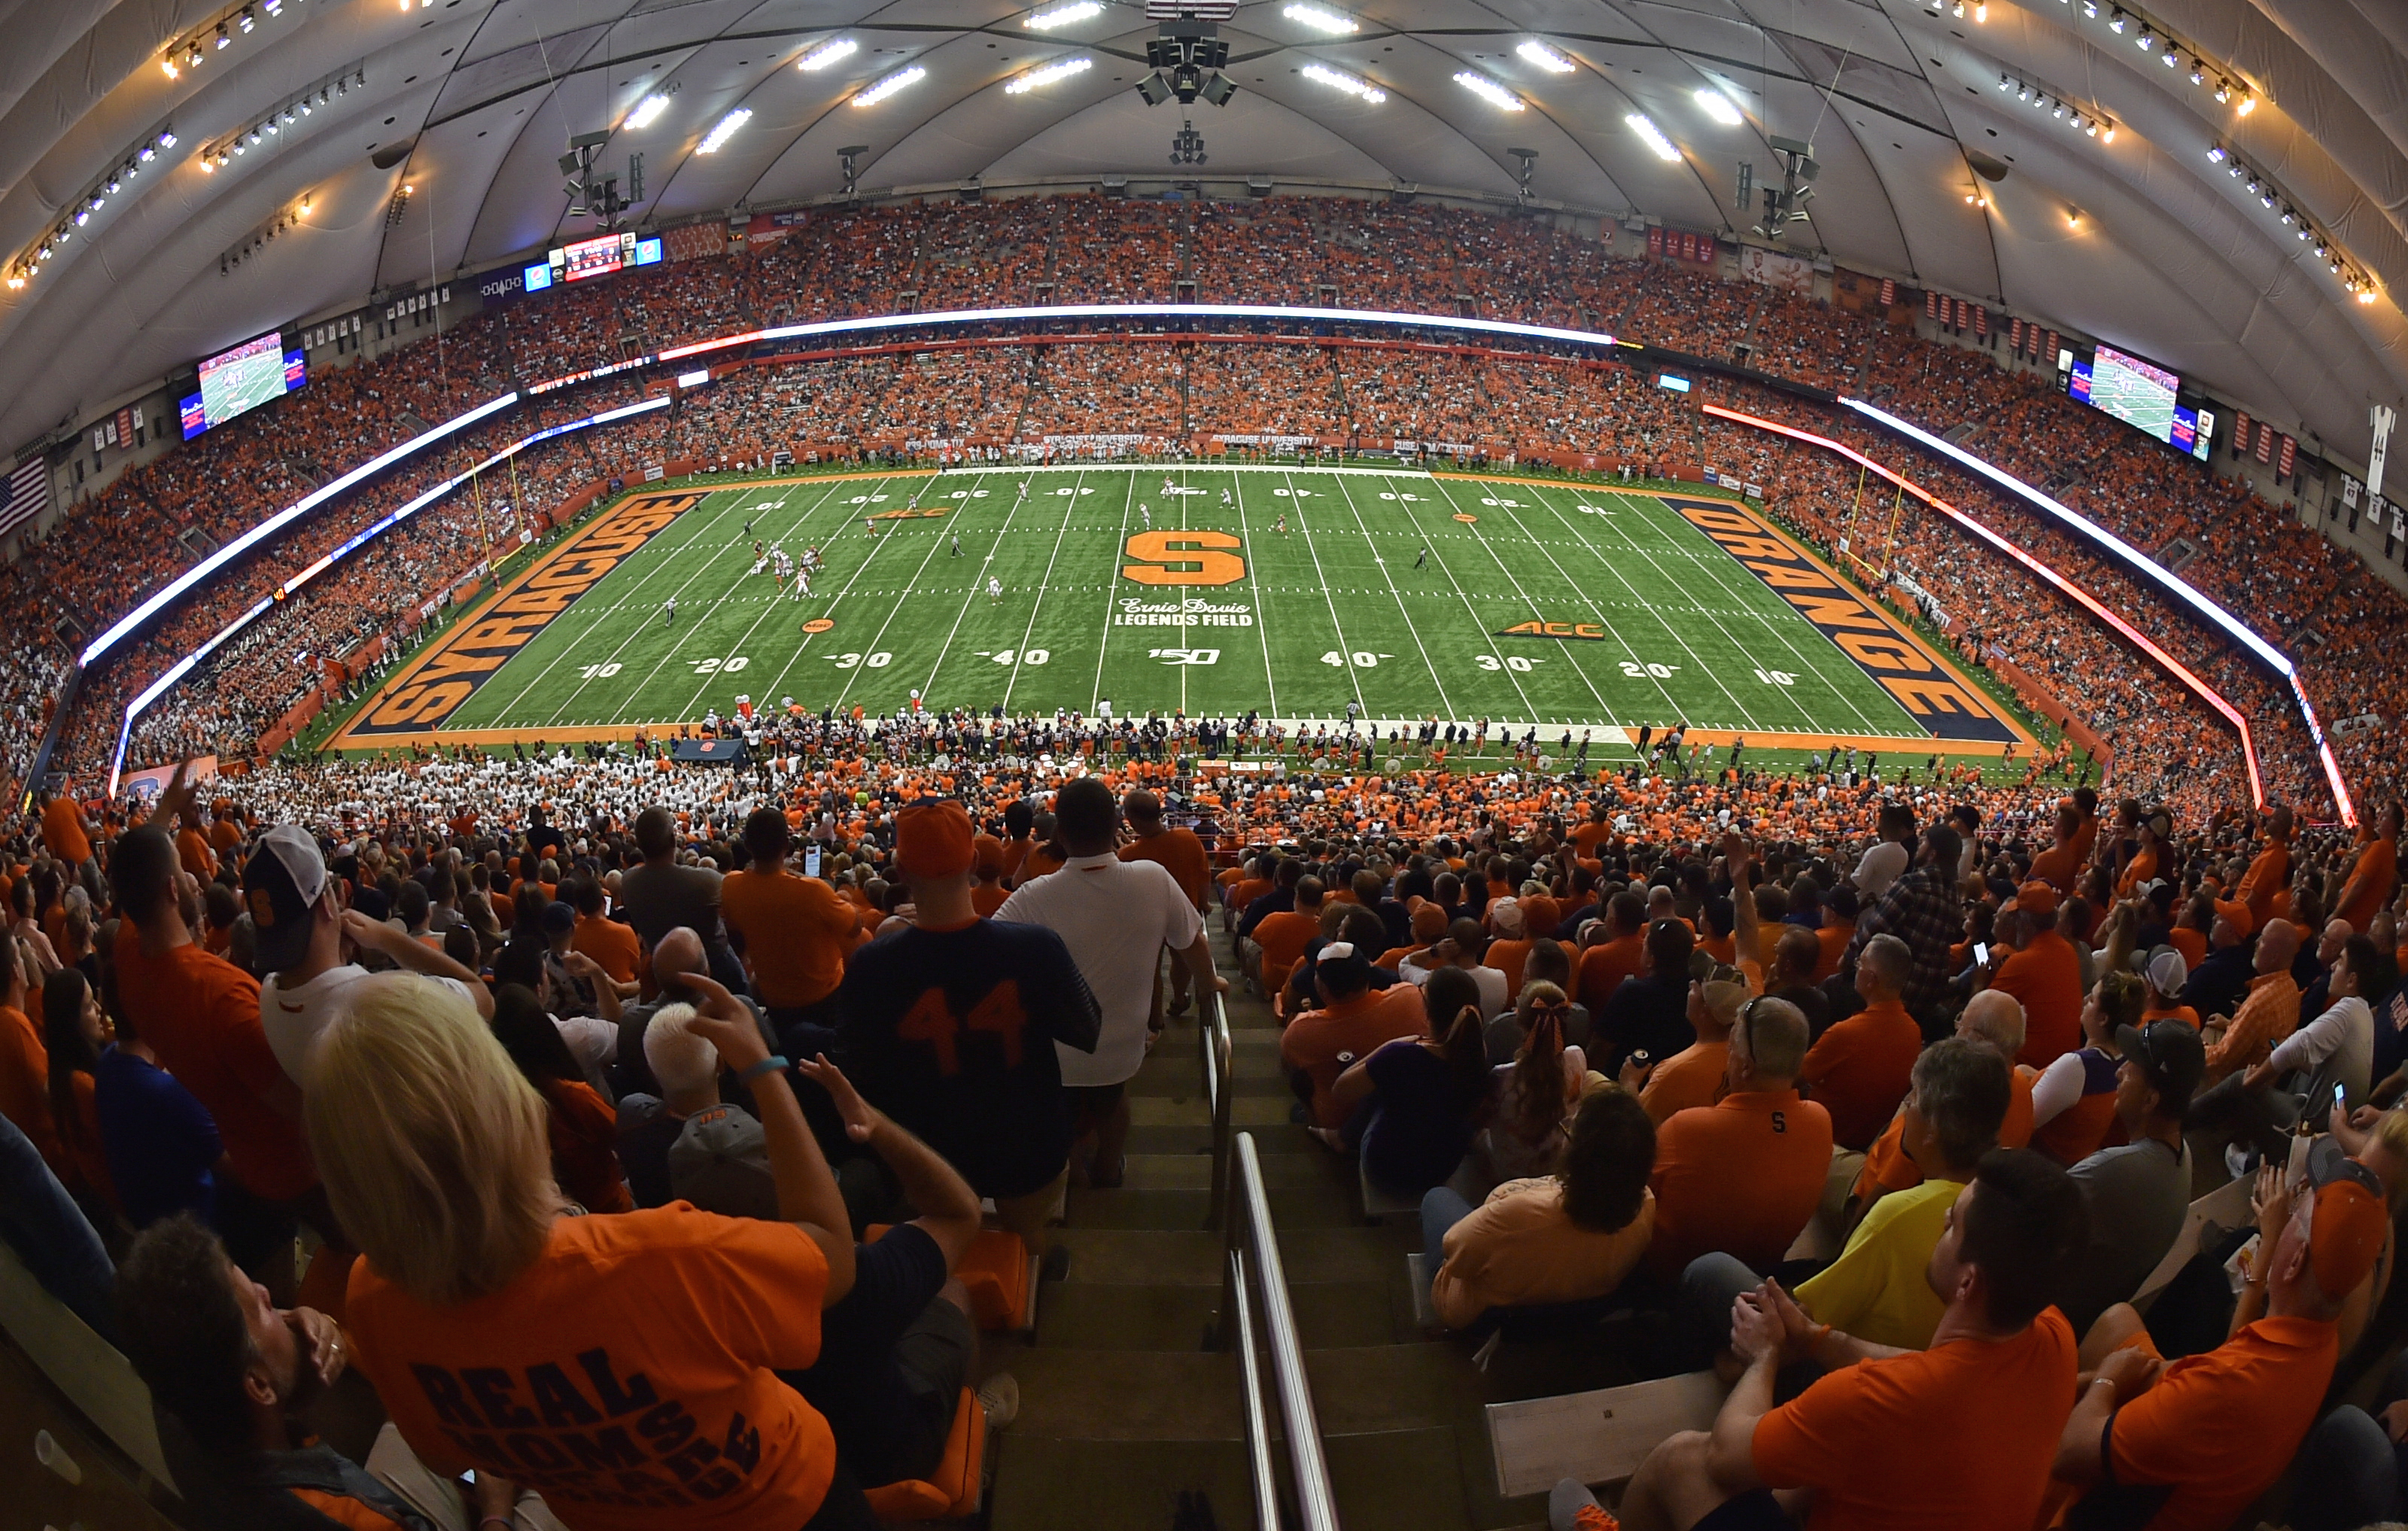 Man revived after cardiac arrest at SU-Clemson game; more top stories (Good Morning CNY for Sept. 16)